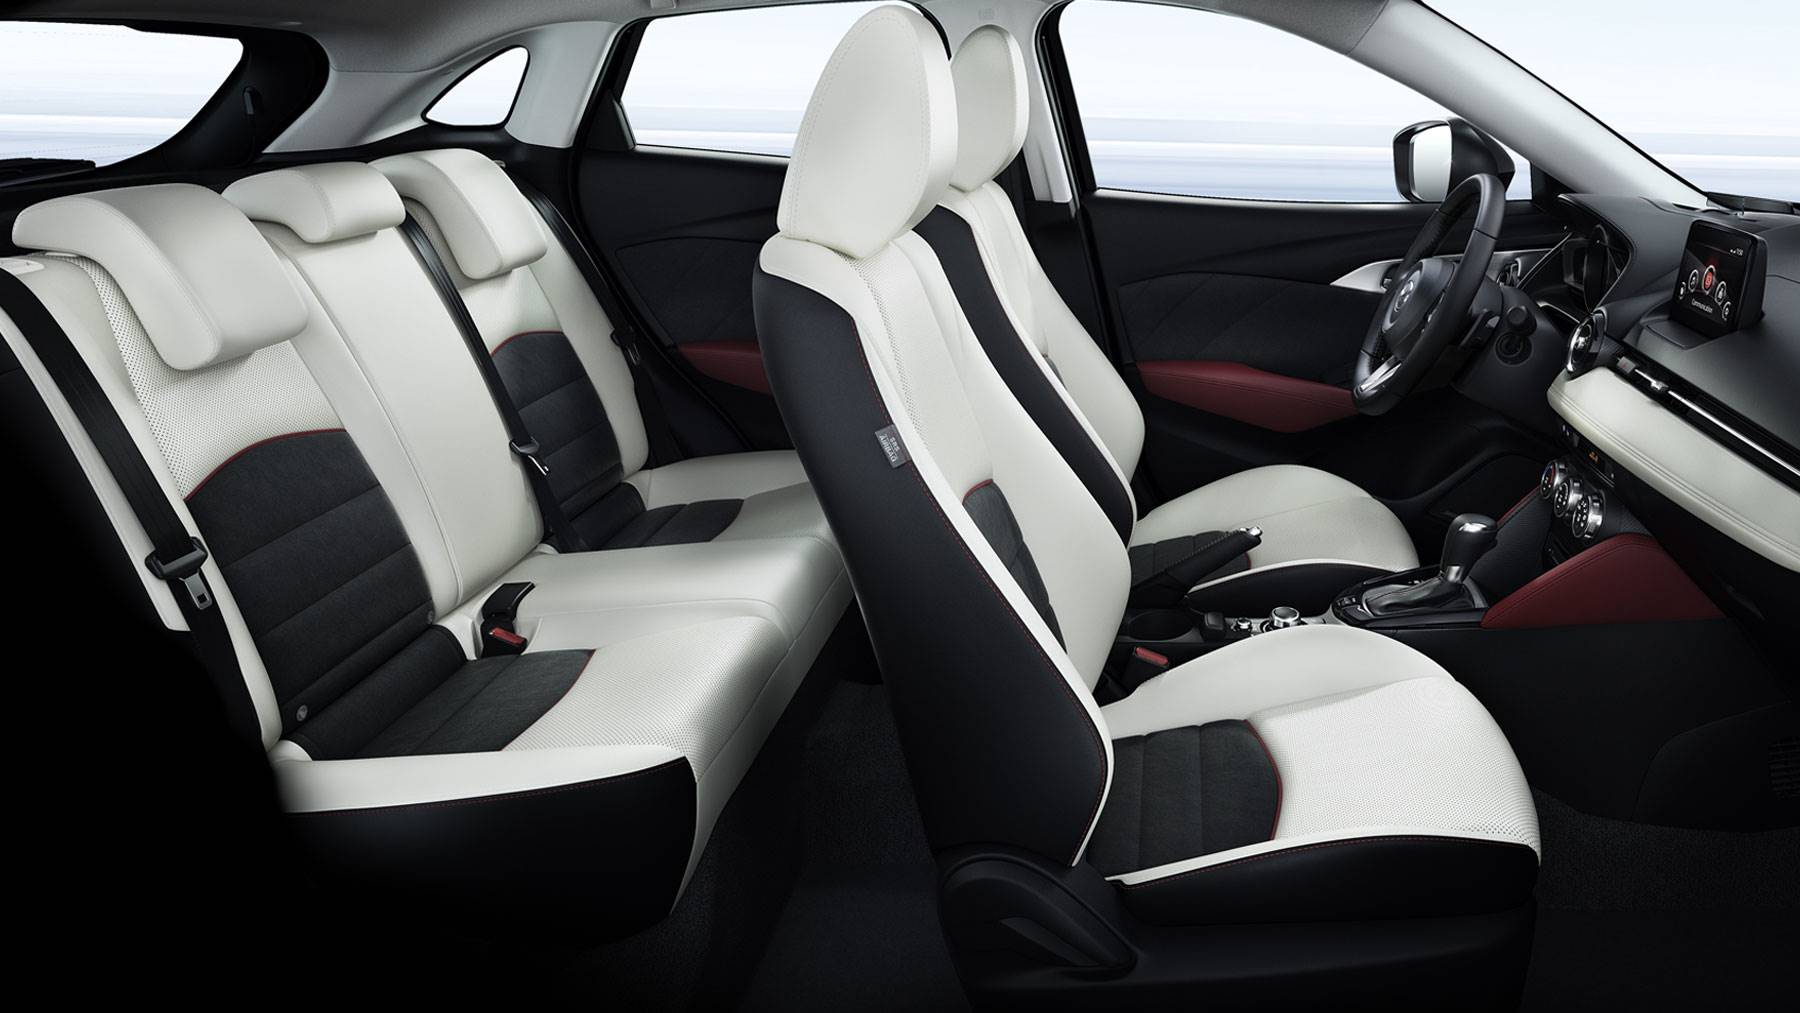 The Luxuriously Appointed Interior of the Mazda CX-3